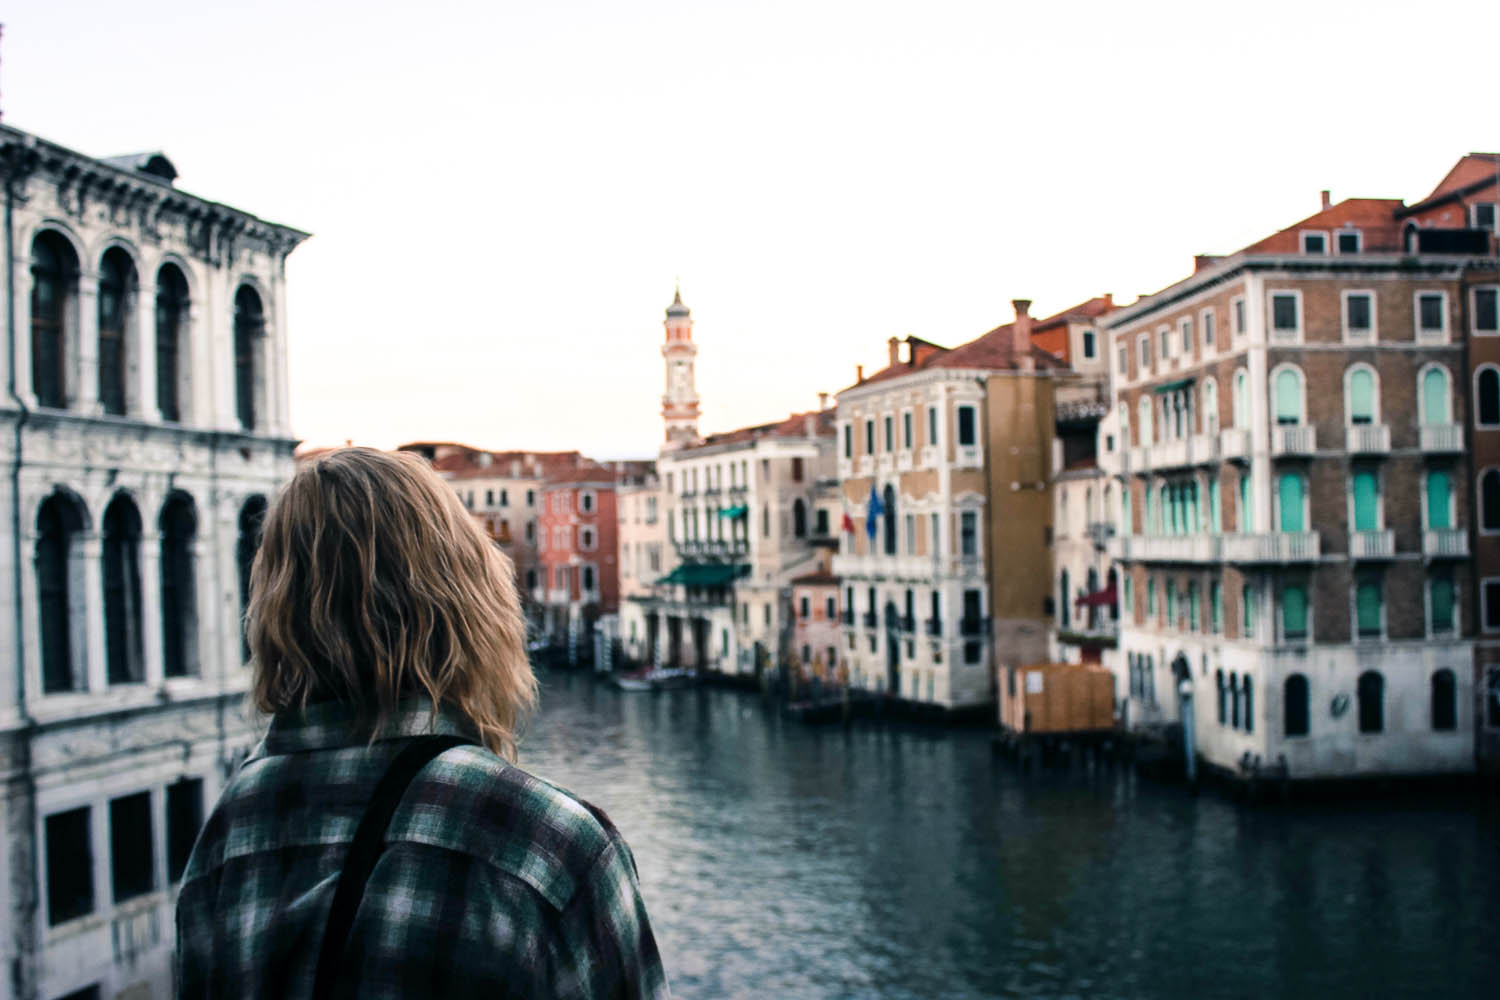 Woman overlooking Venice canal